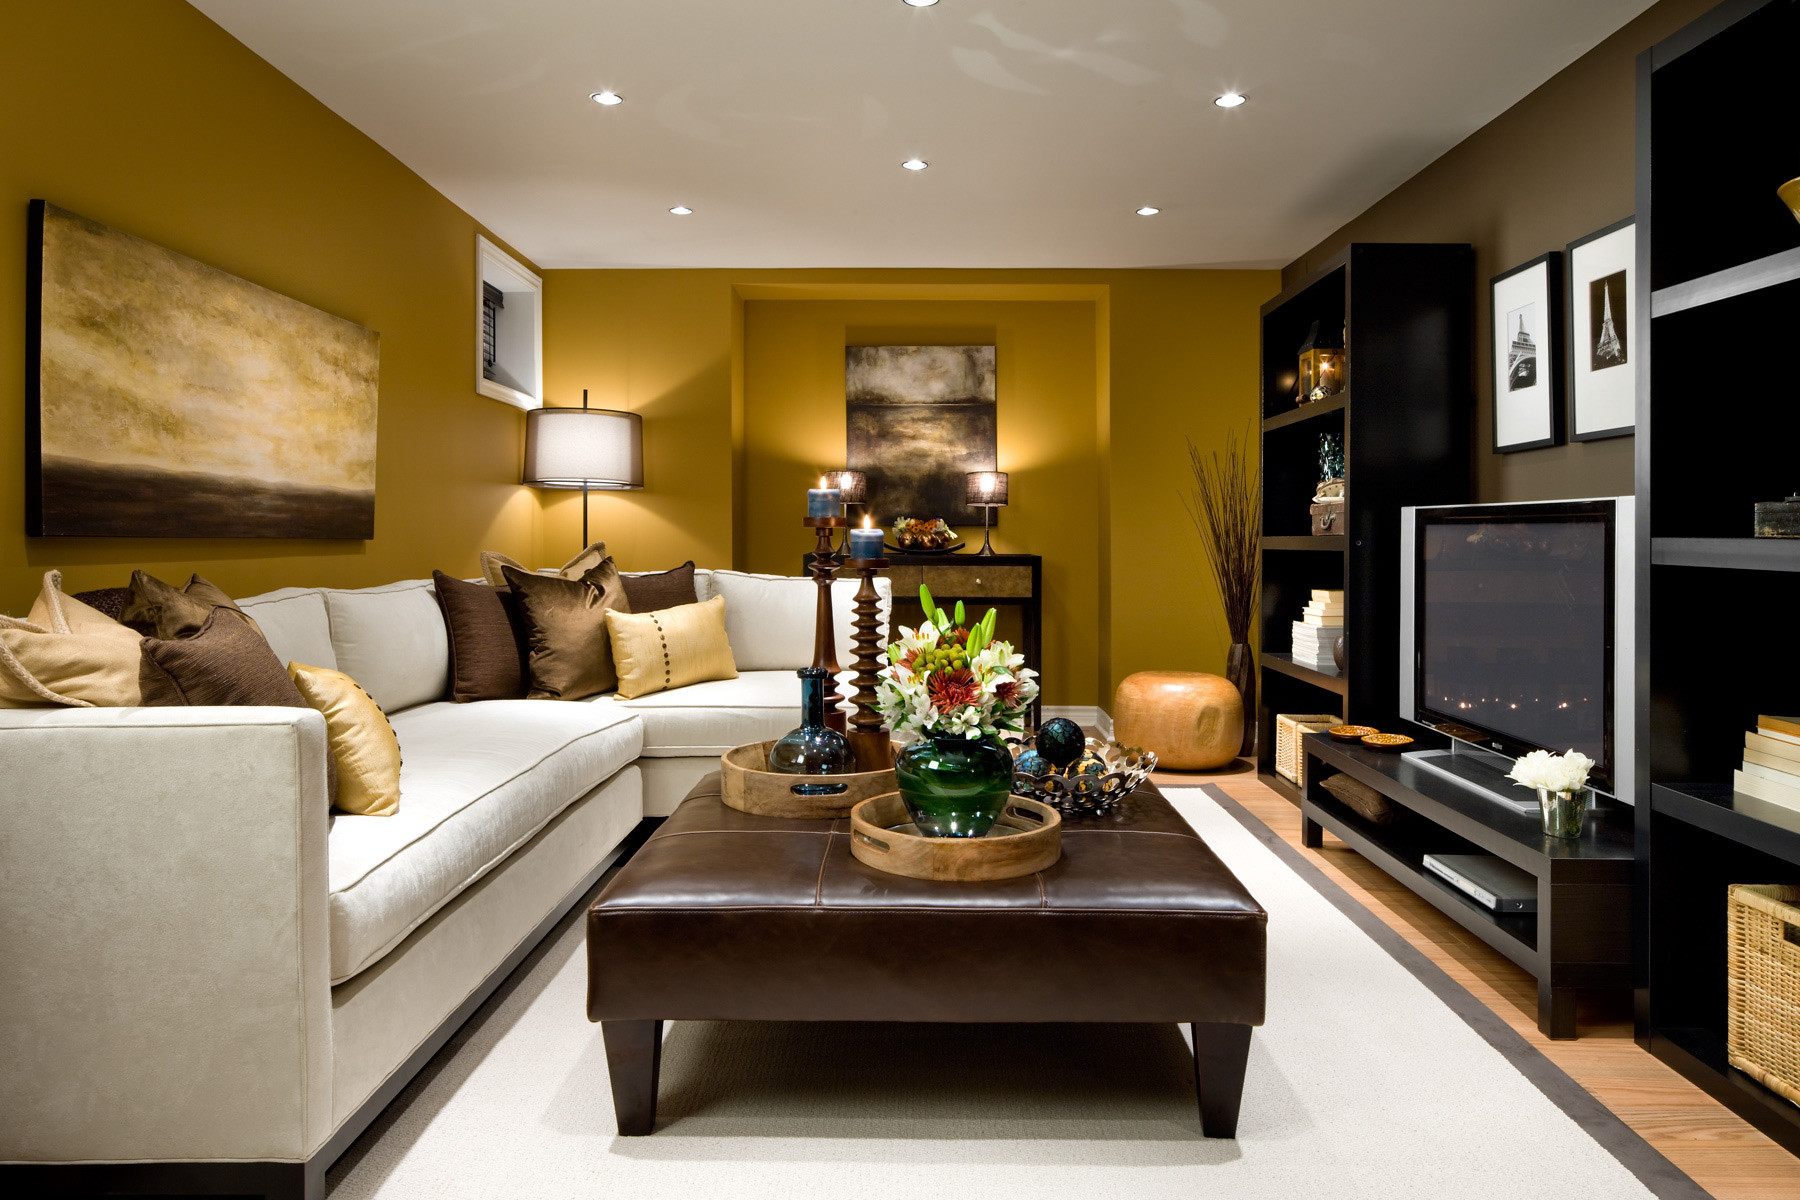 Best ideas about Small Family Room Ideas . Save or Pin 50 Best Small Living Room Design Ideas for 2019 Now.